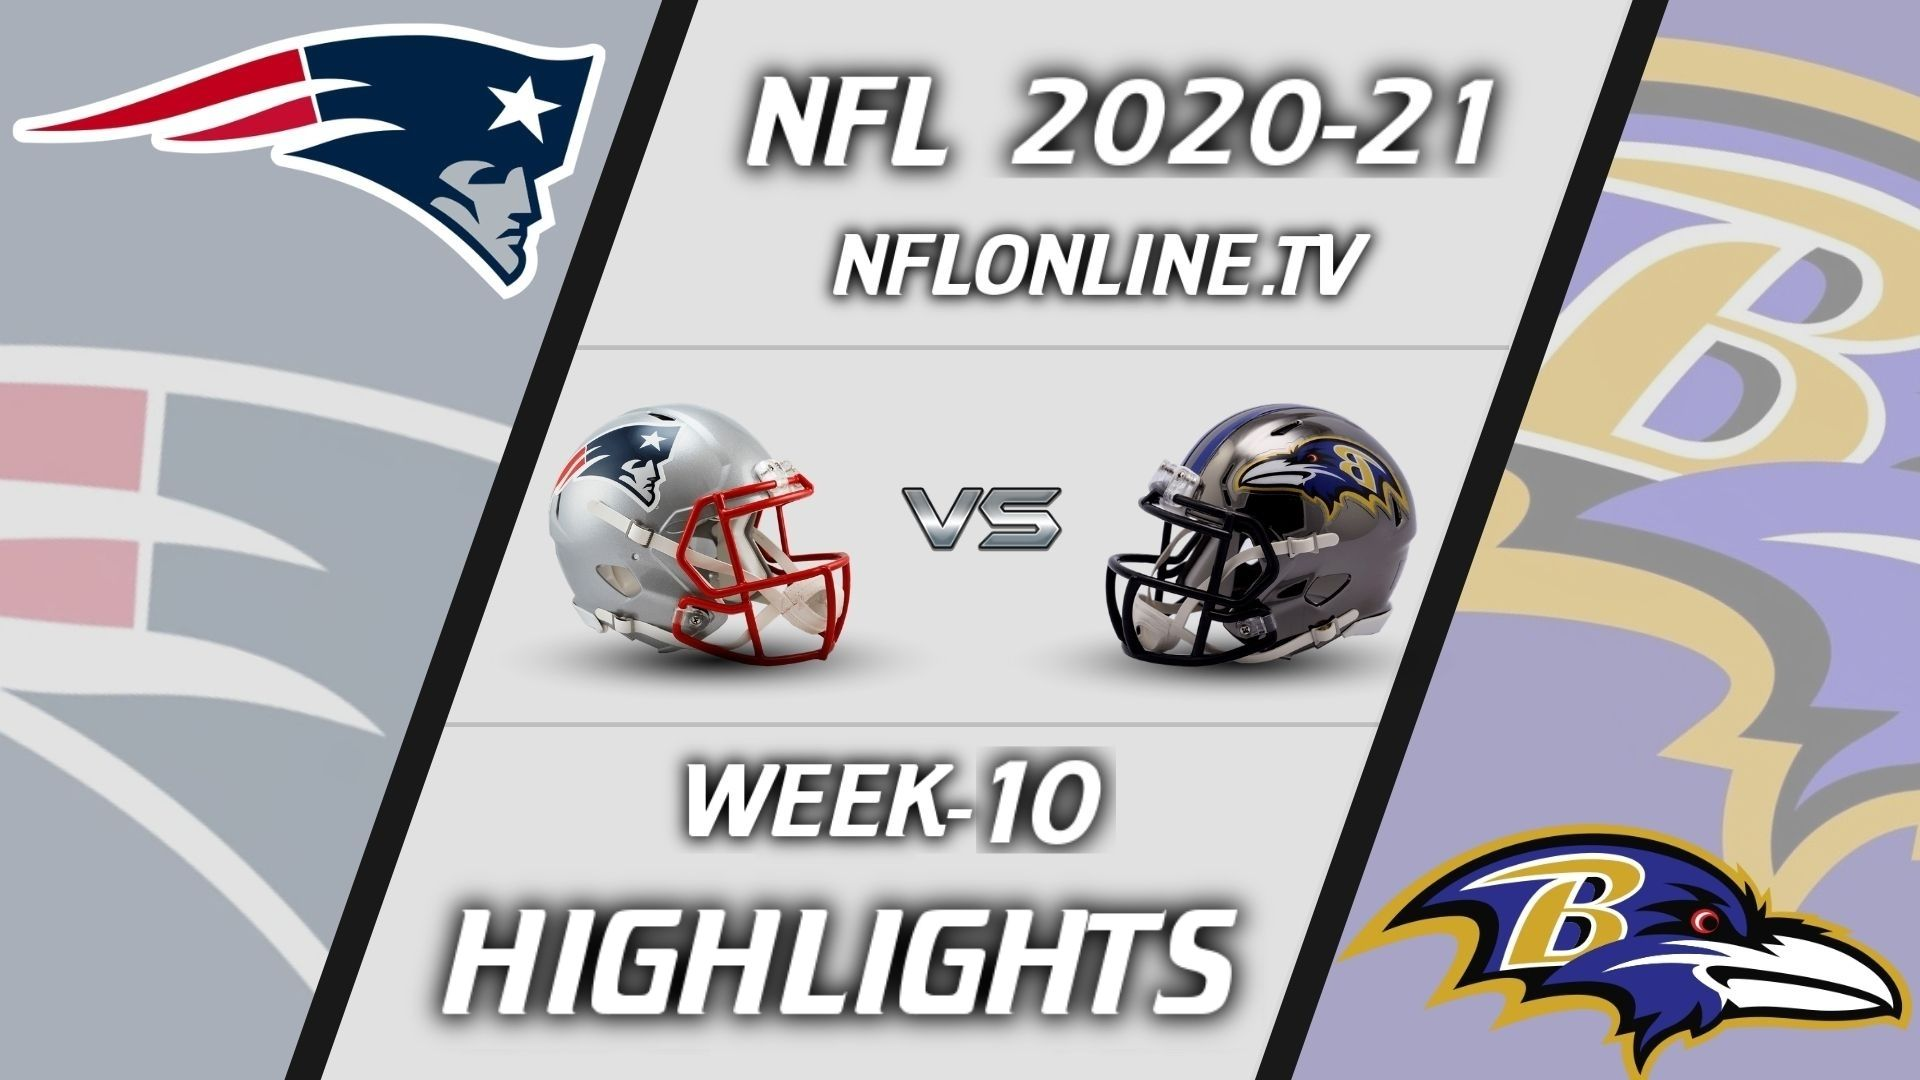 Patriots vs Ravens Highlights 2020 WK 10